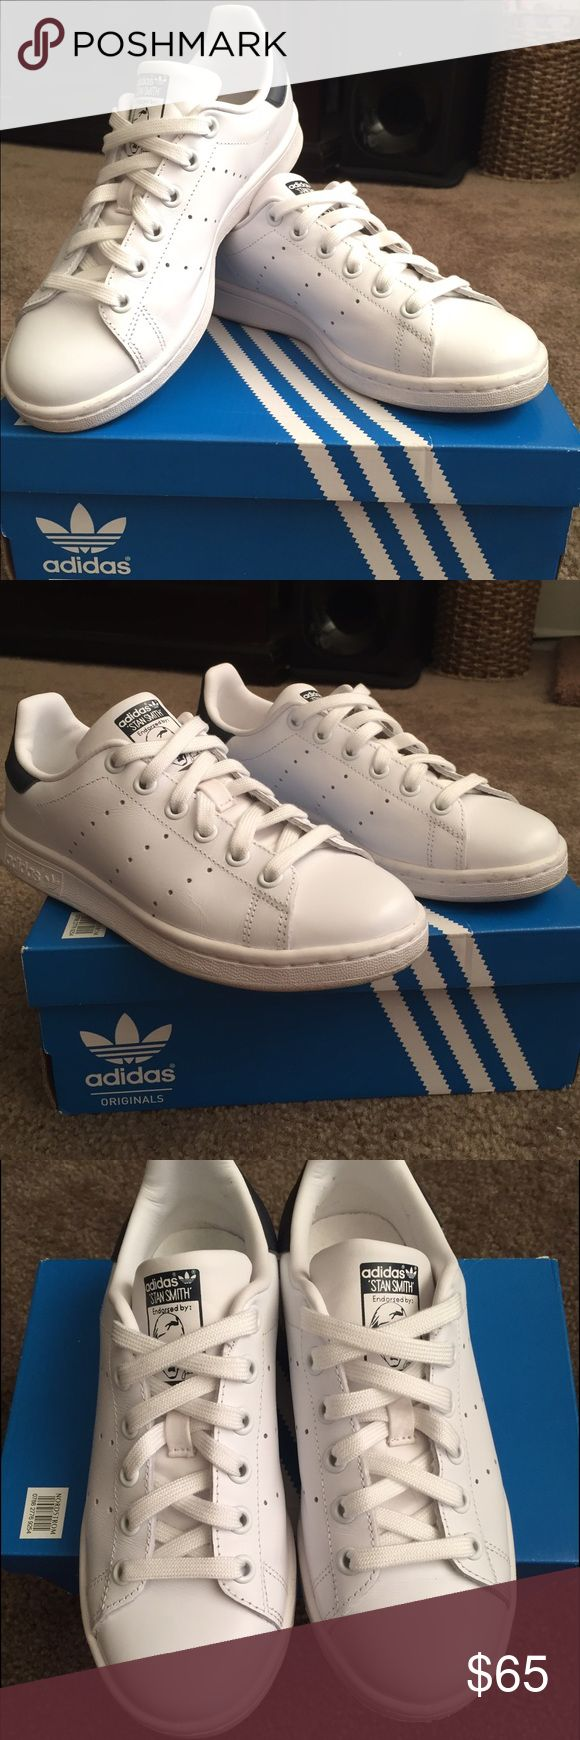 Stan Smith Adidas Size 4 in men and 6 in woman. Unisex style. Super cute, I just can't wear them since they are loose on me. Wore them a couple times, still in new condition. Adidas Shoes Sneakers